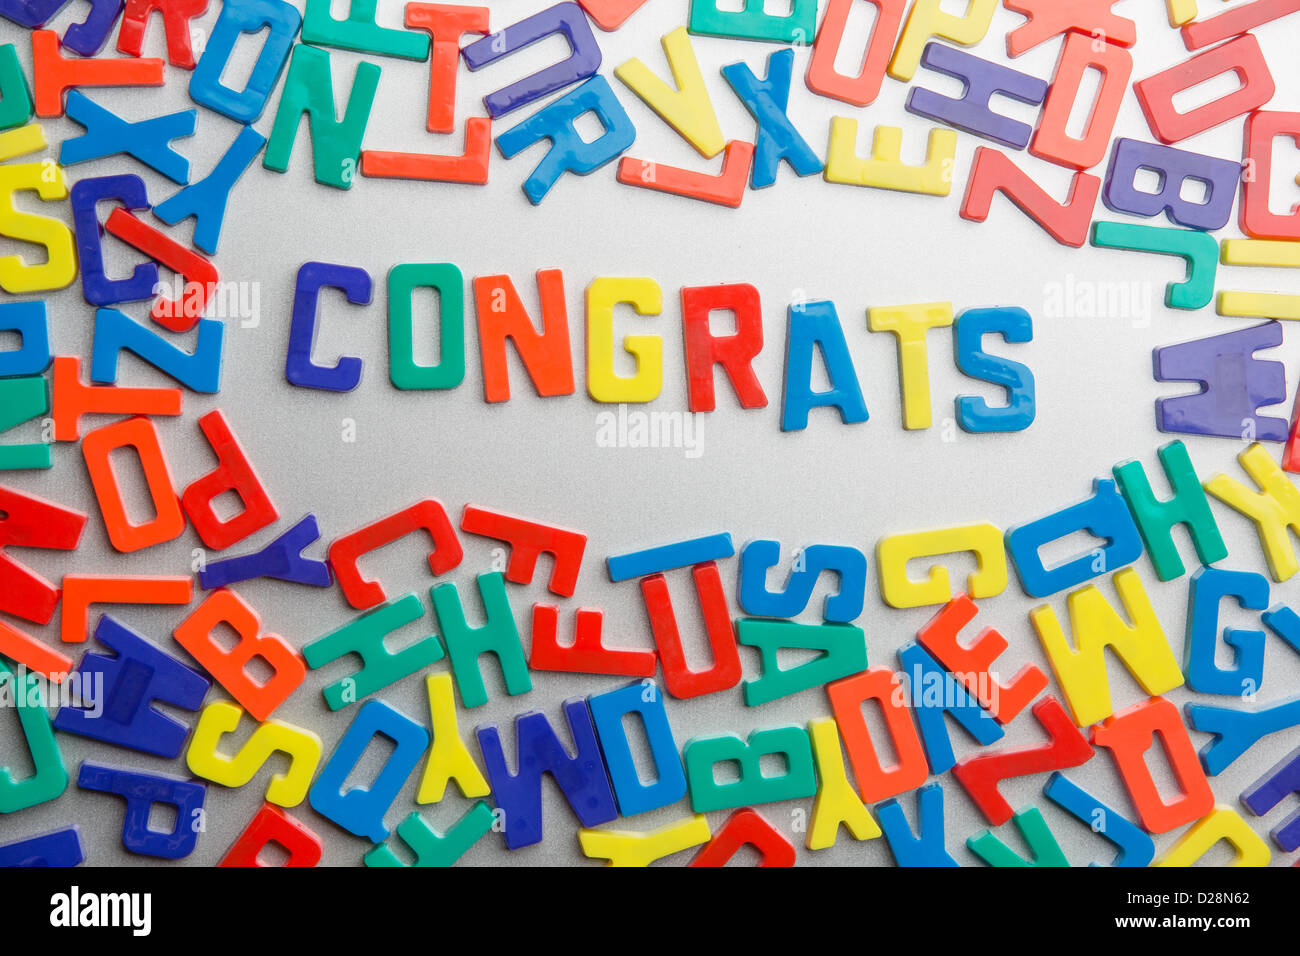 Congrats refrigerator magnets spell a message out of a jumble of congrats refrigerator magnets spell a message out of a jumble of letters thecheapjerseys Images